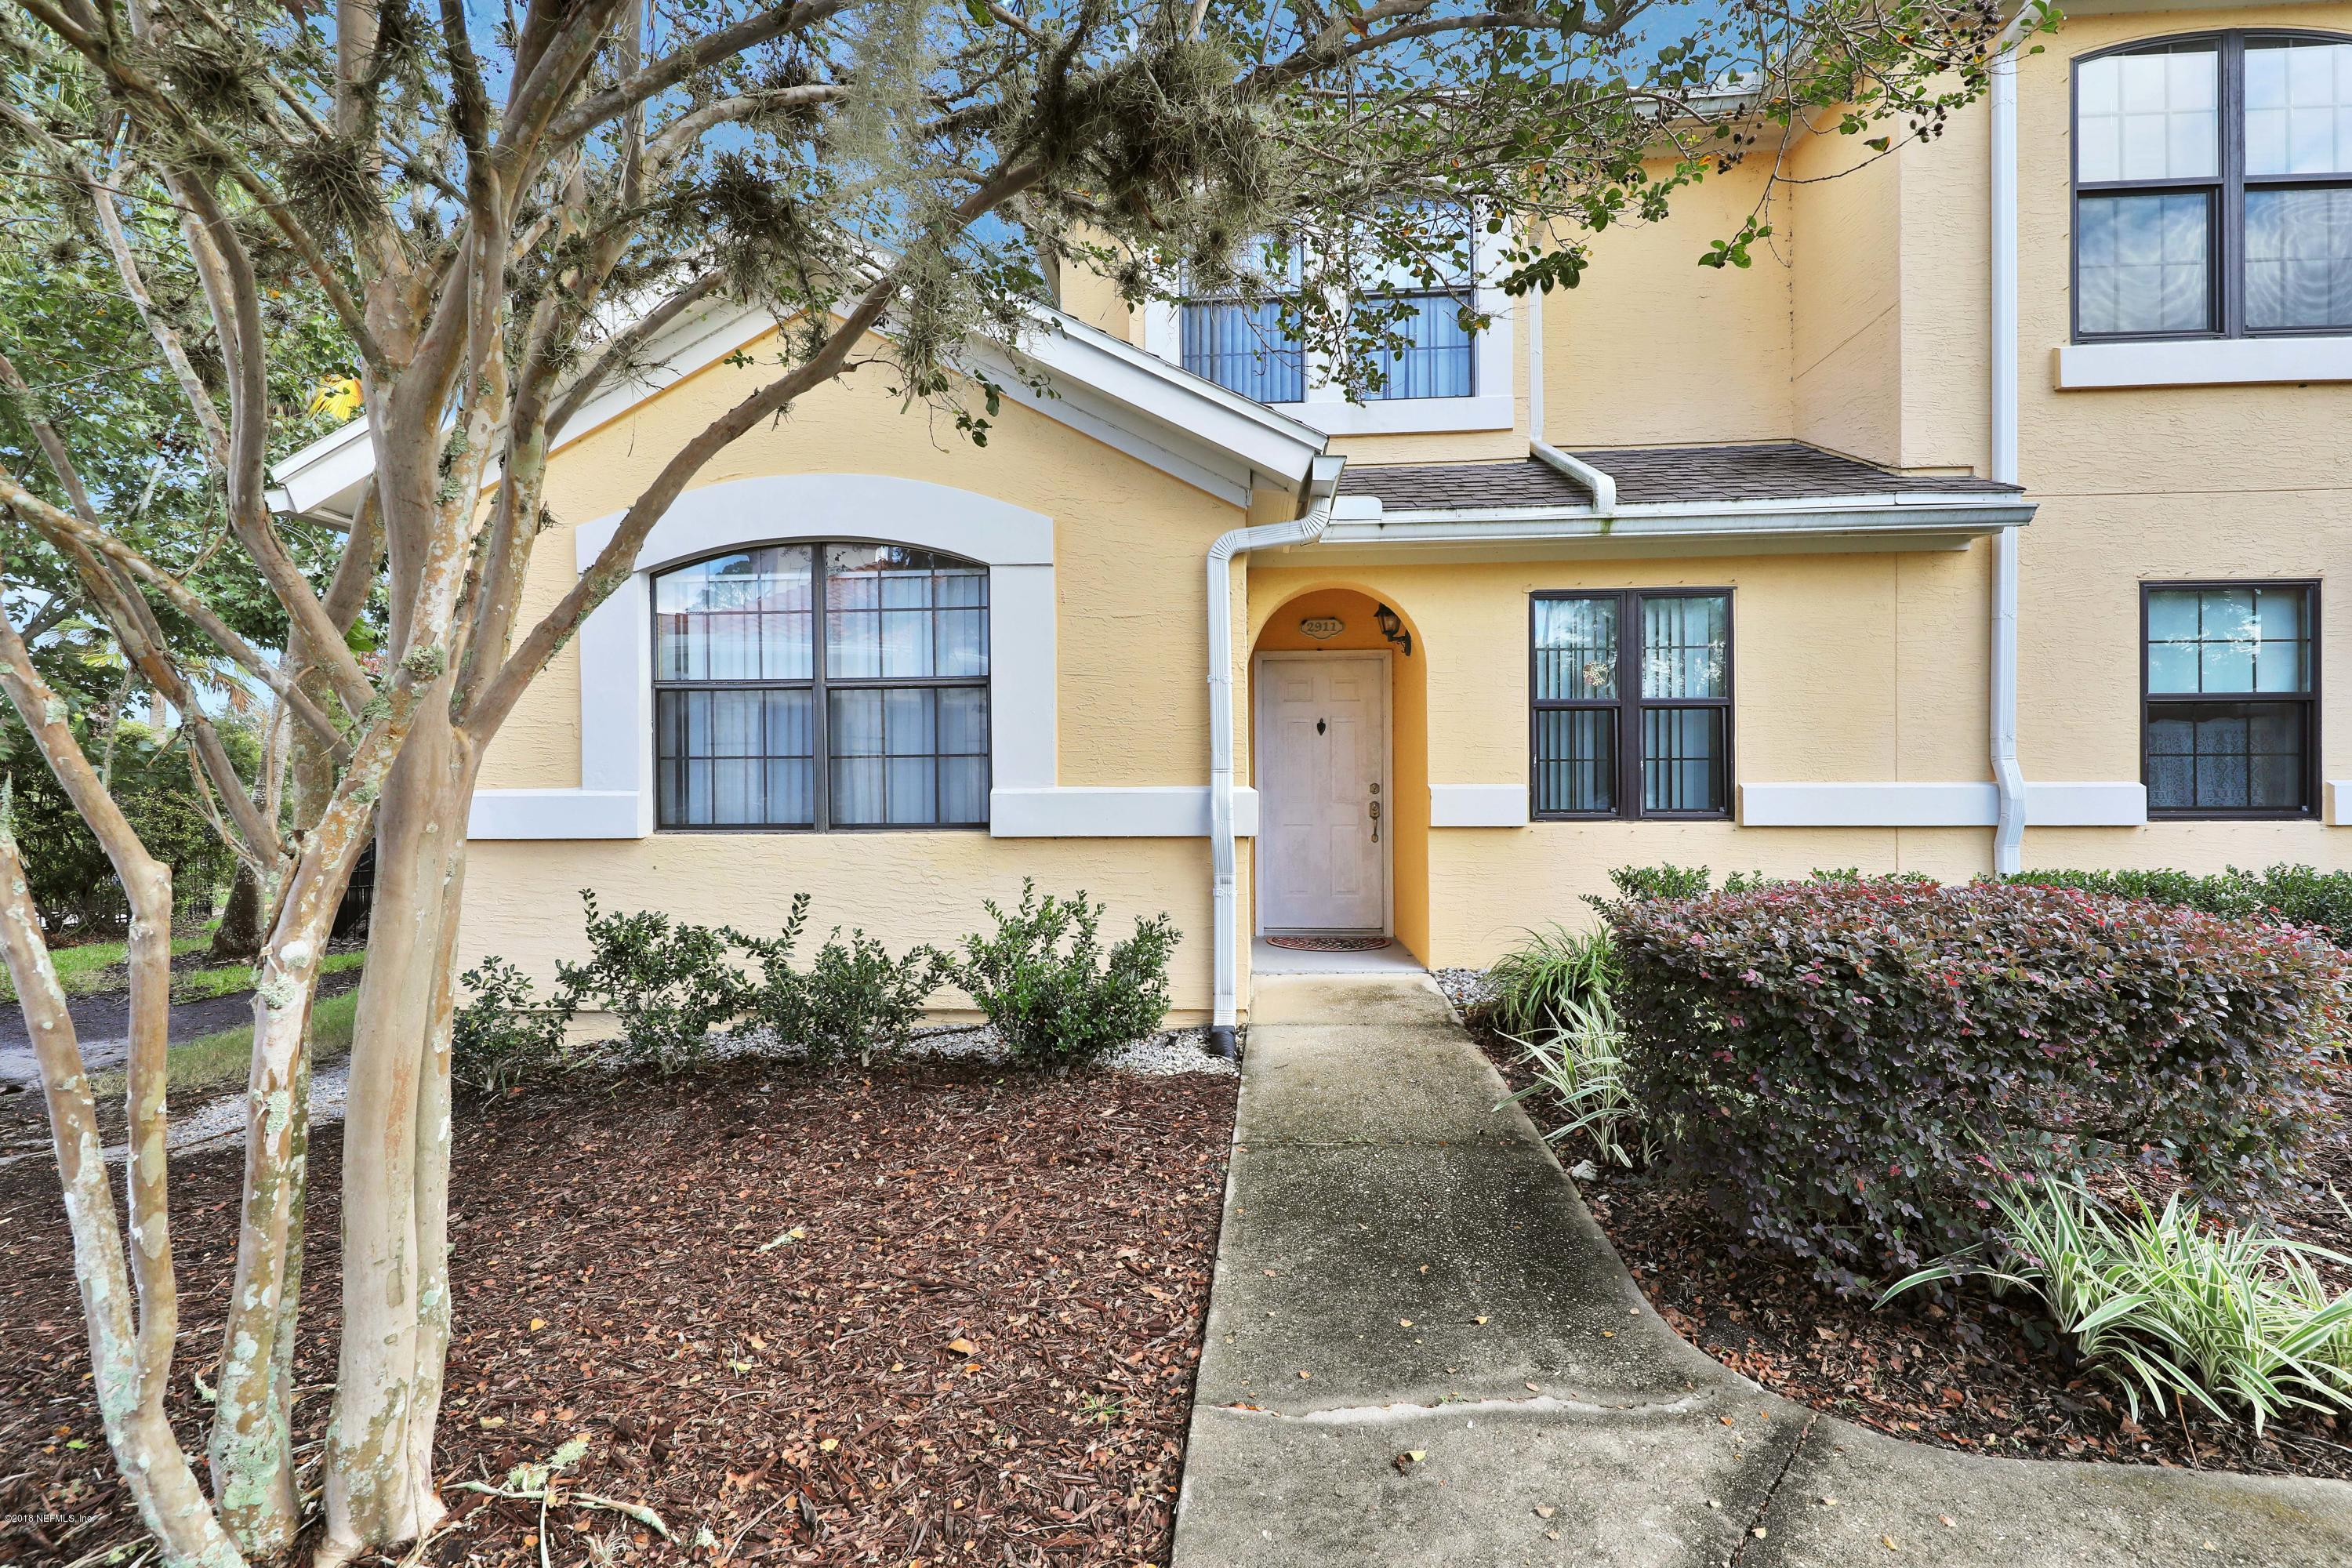 2911 VISTA COVE, ST AUGUSTINE, FLORIDA 32084, 3 Bedrooms Bedrooms, ,3 BathroomsBathrooms,Residential - condos/townhomes,For sale,VISTA COVE,967437